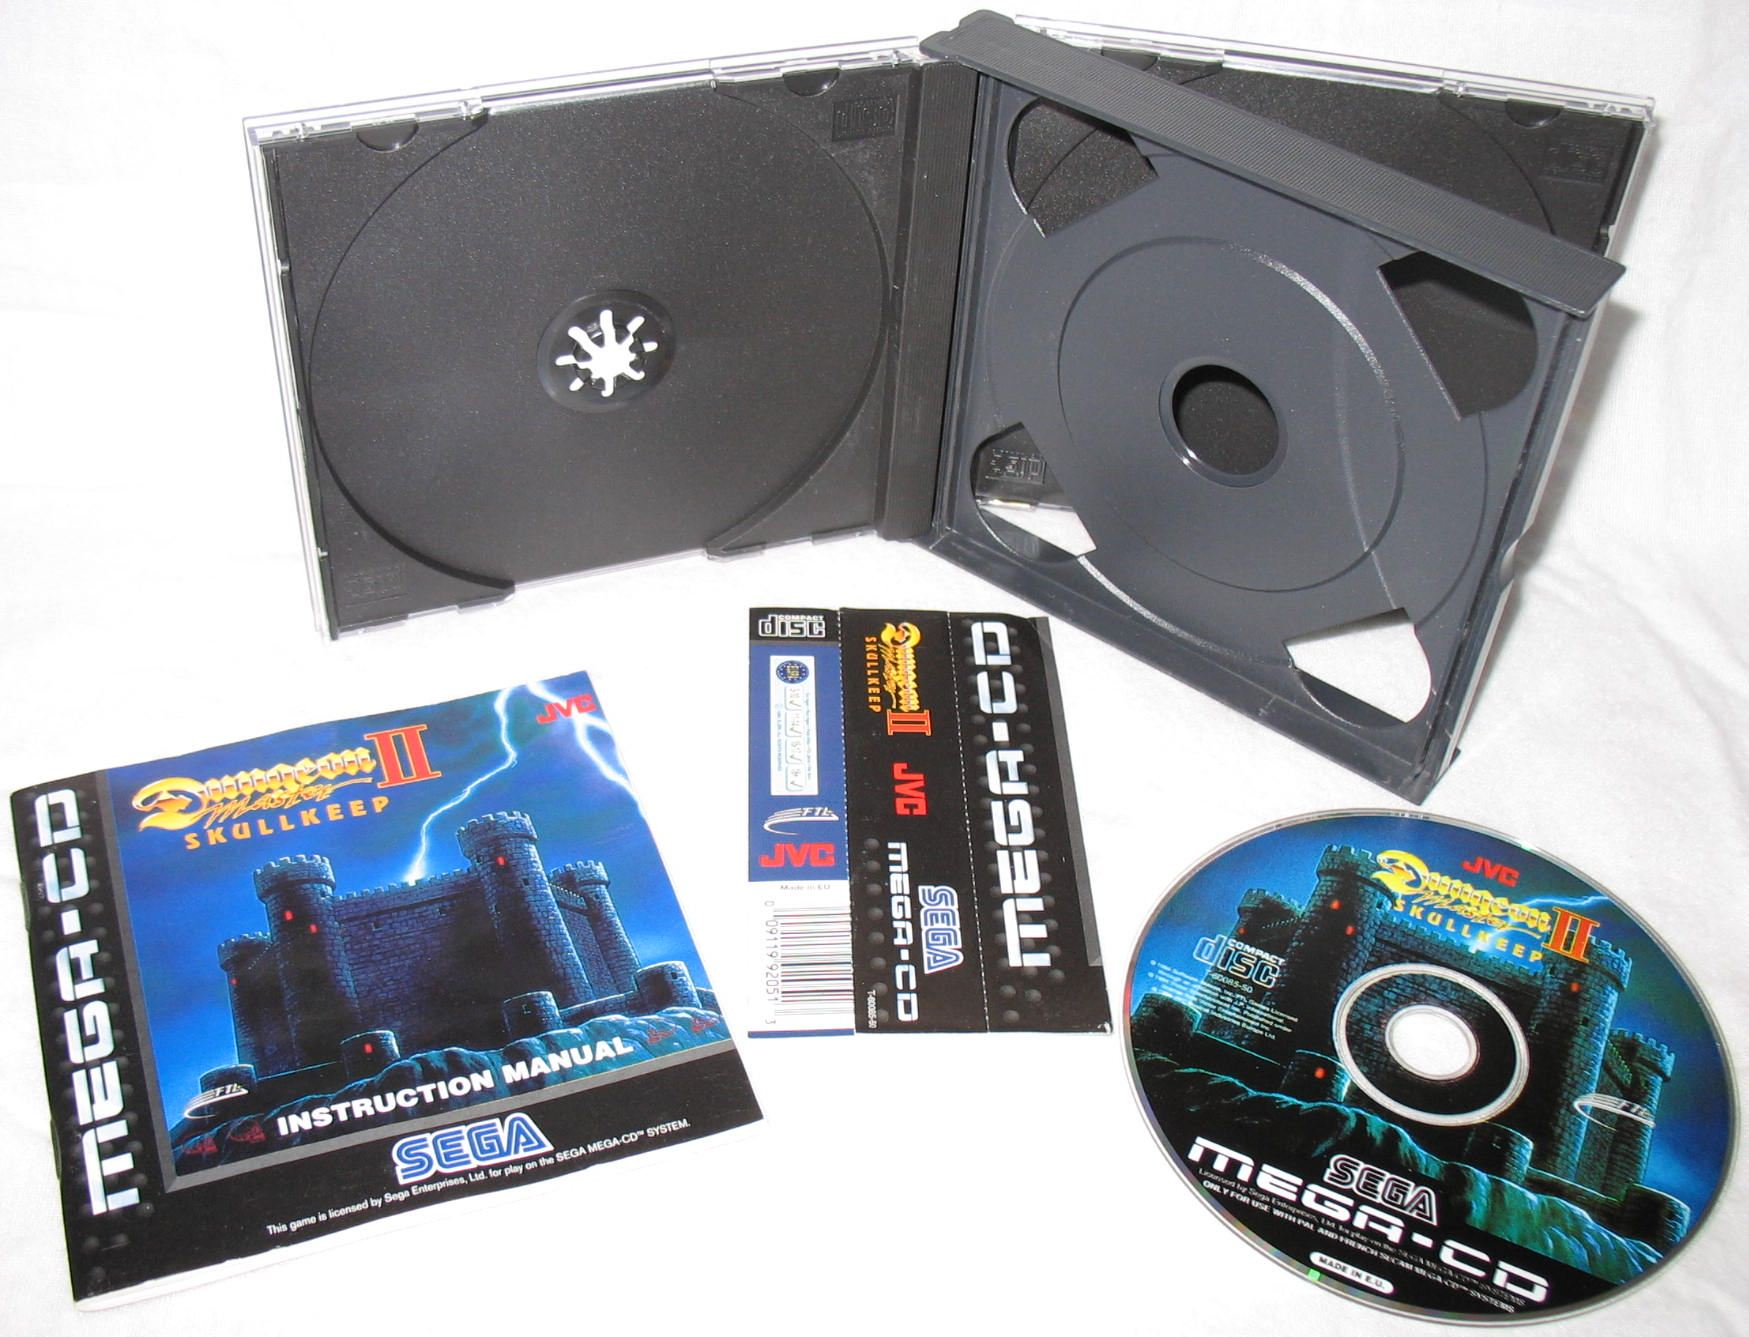 Game - Dungeon Master II - EU - Mega CD - All - Overview - Photo